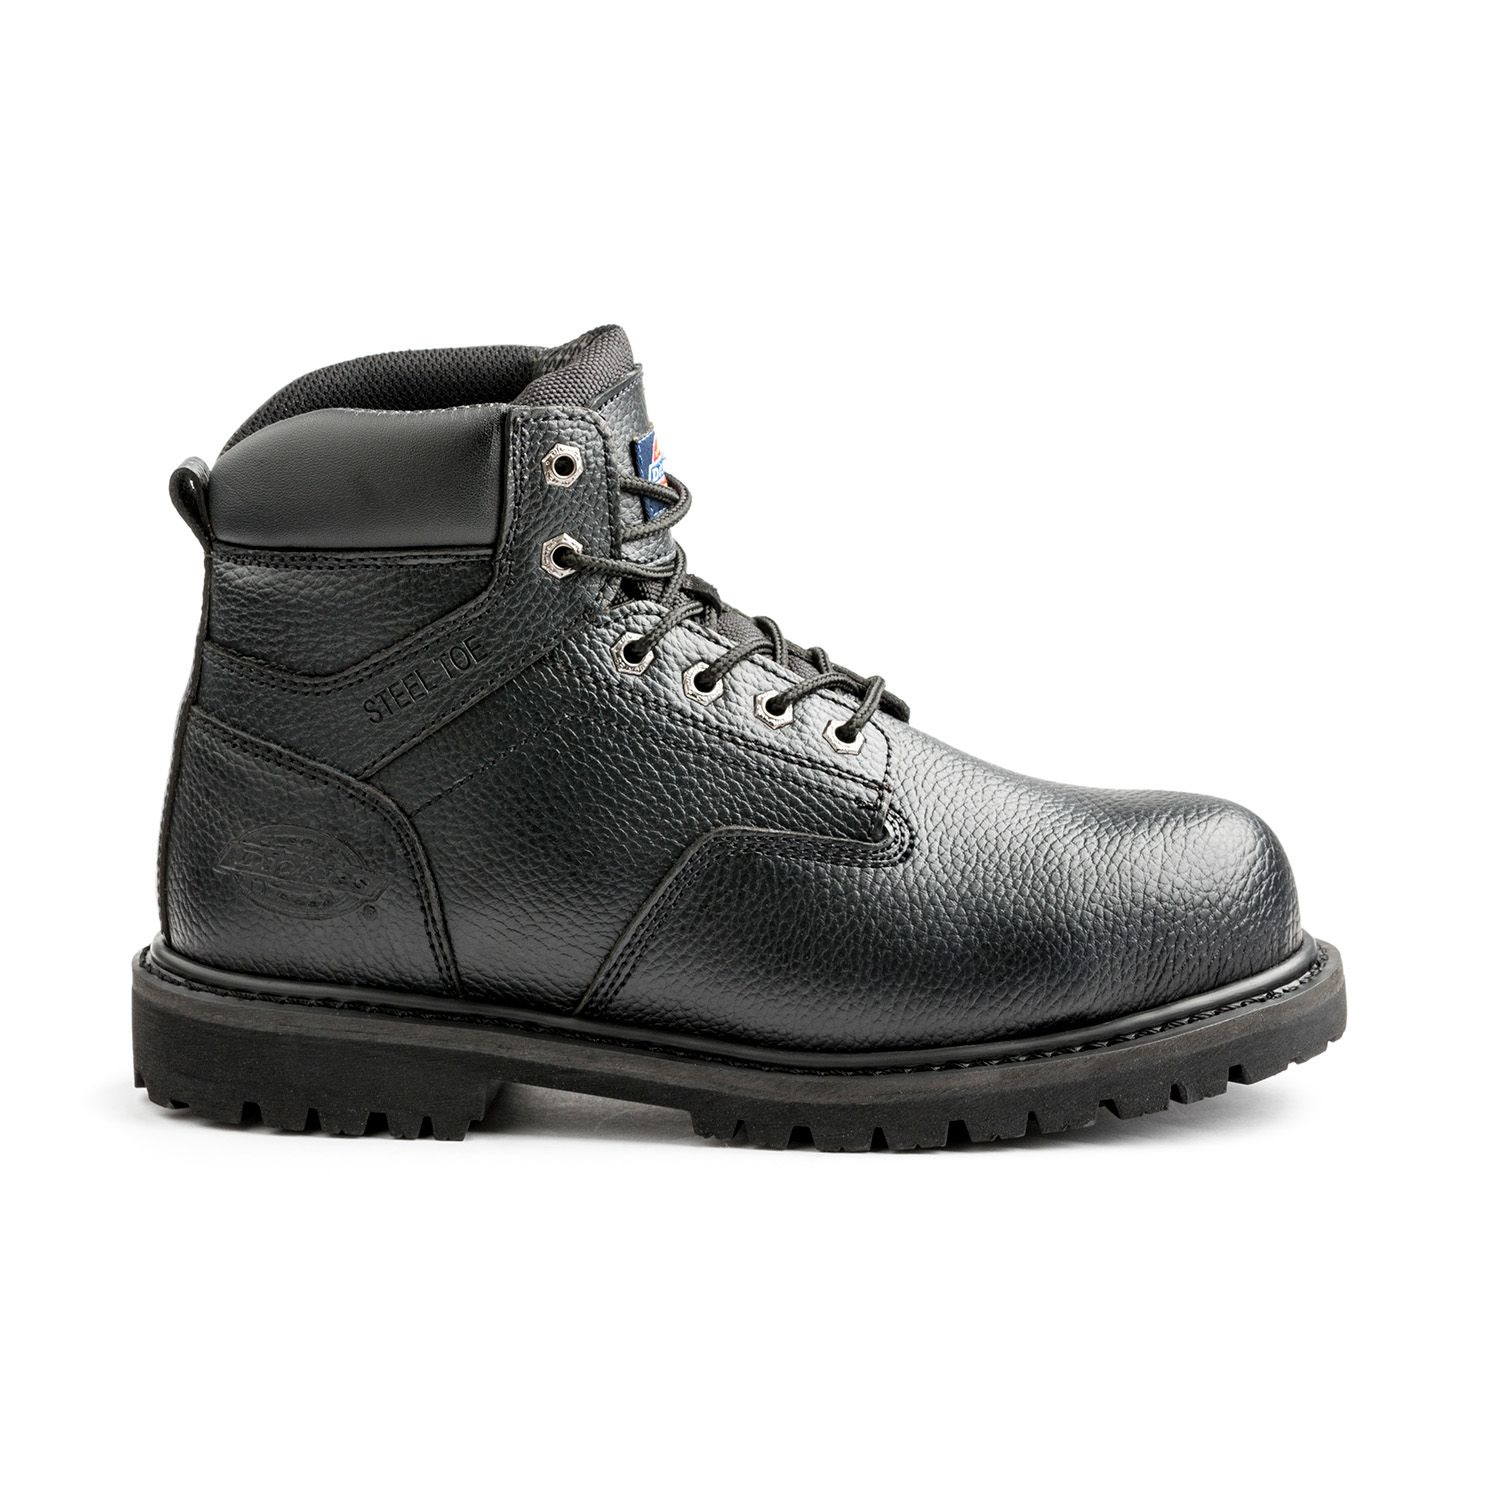 a7b2c7a7aa01 Mens Work Boots